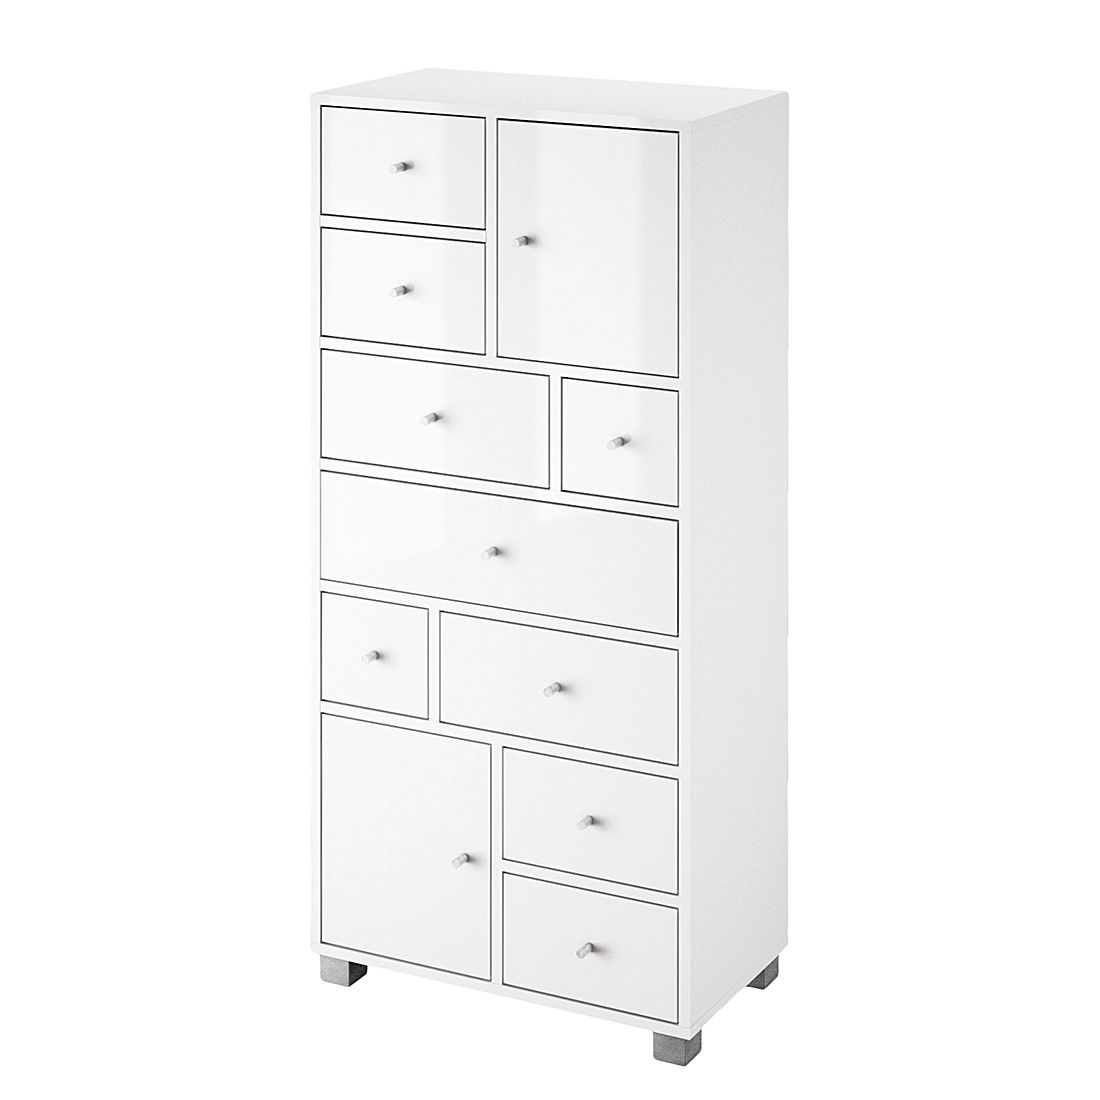 Highboard Aliane - Panama eikenhouten look/bont - Wit, Schildmeyer